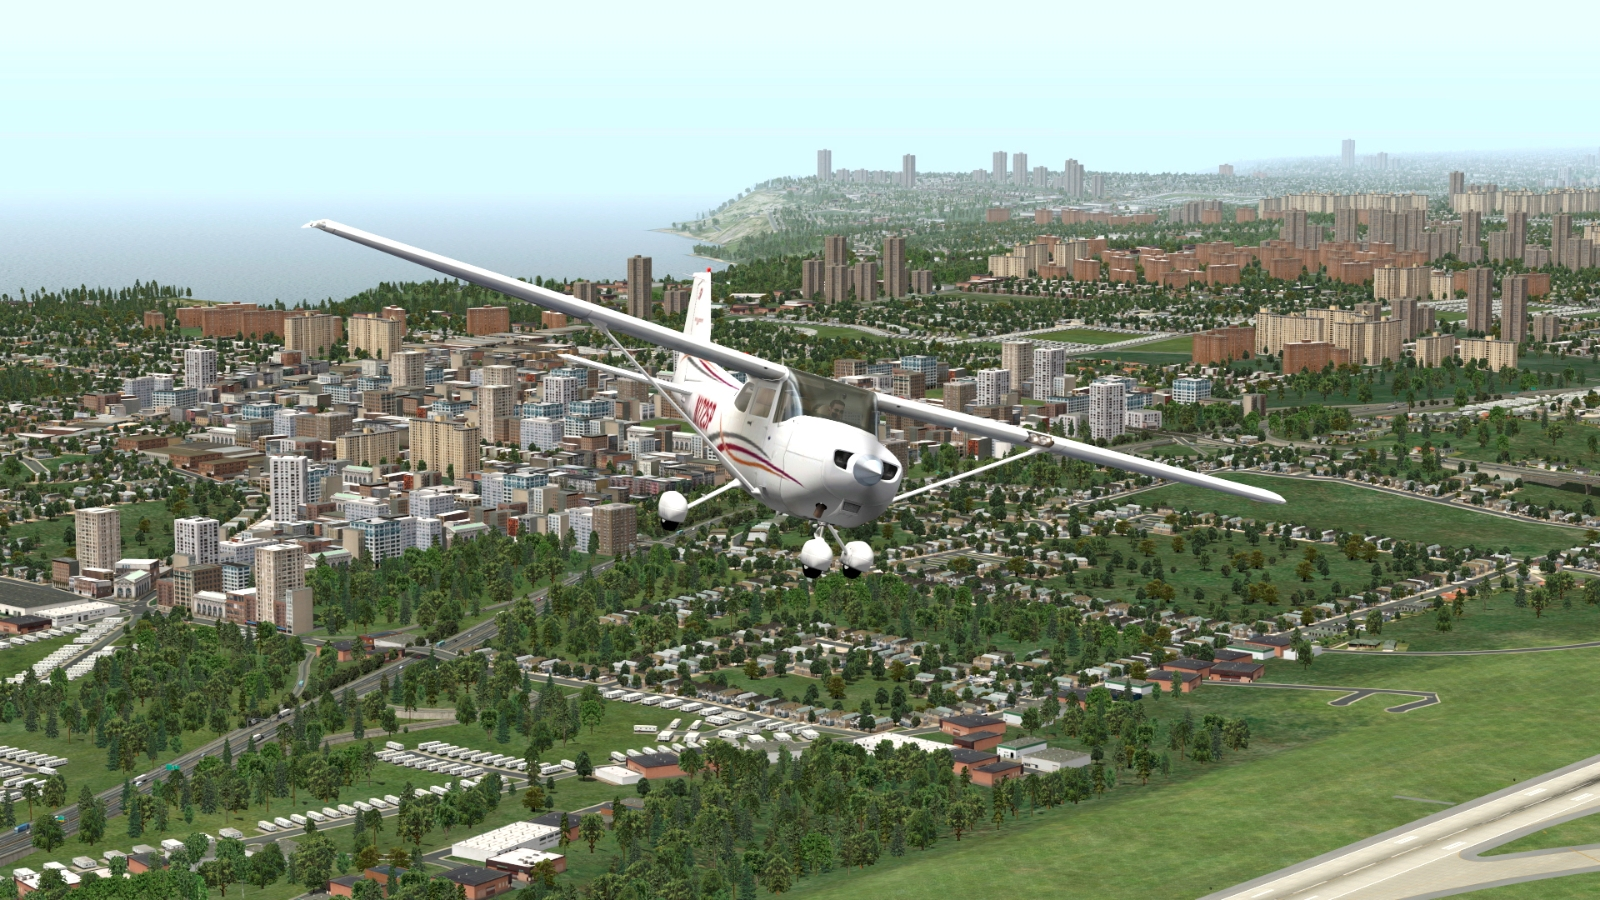 X-Plane 10 Global - 64 Bit - Europe Scenery on Steam